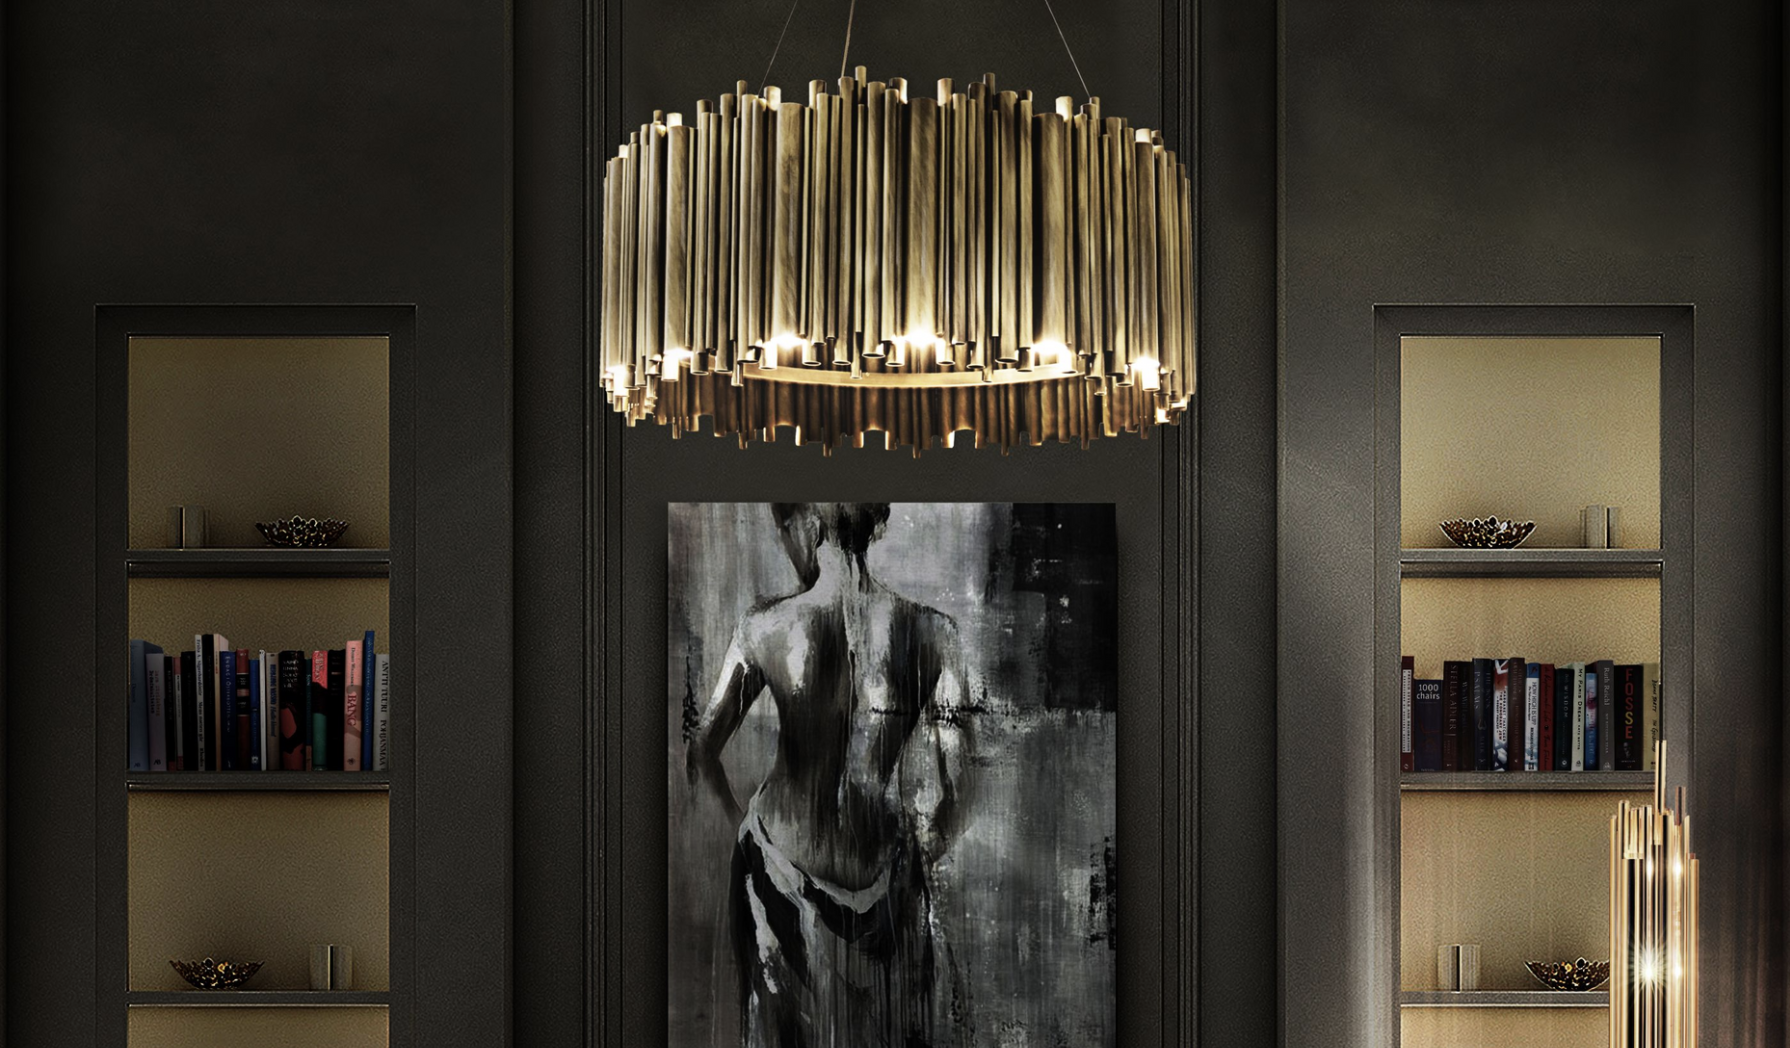 How To Highlight Artwork With 4 Types Of Luxury Light Pieces! luxury light pieces How To Highlight Artwork With 4 Types Of Luxury Light Pieces! Captura de ecra   2021 02 05 a  s 15